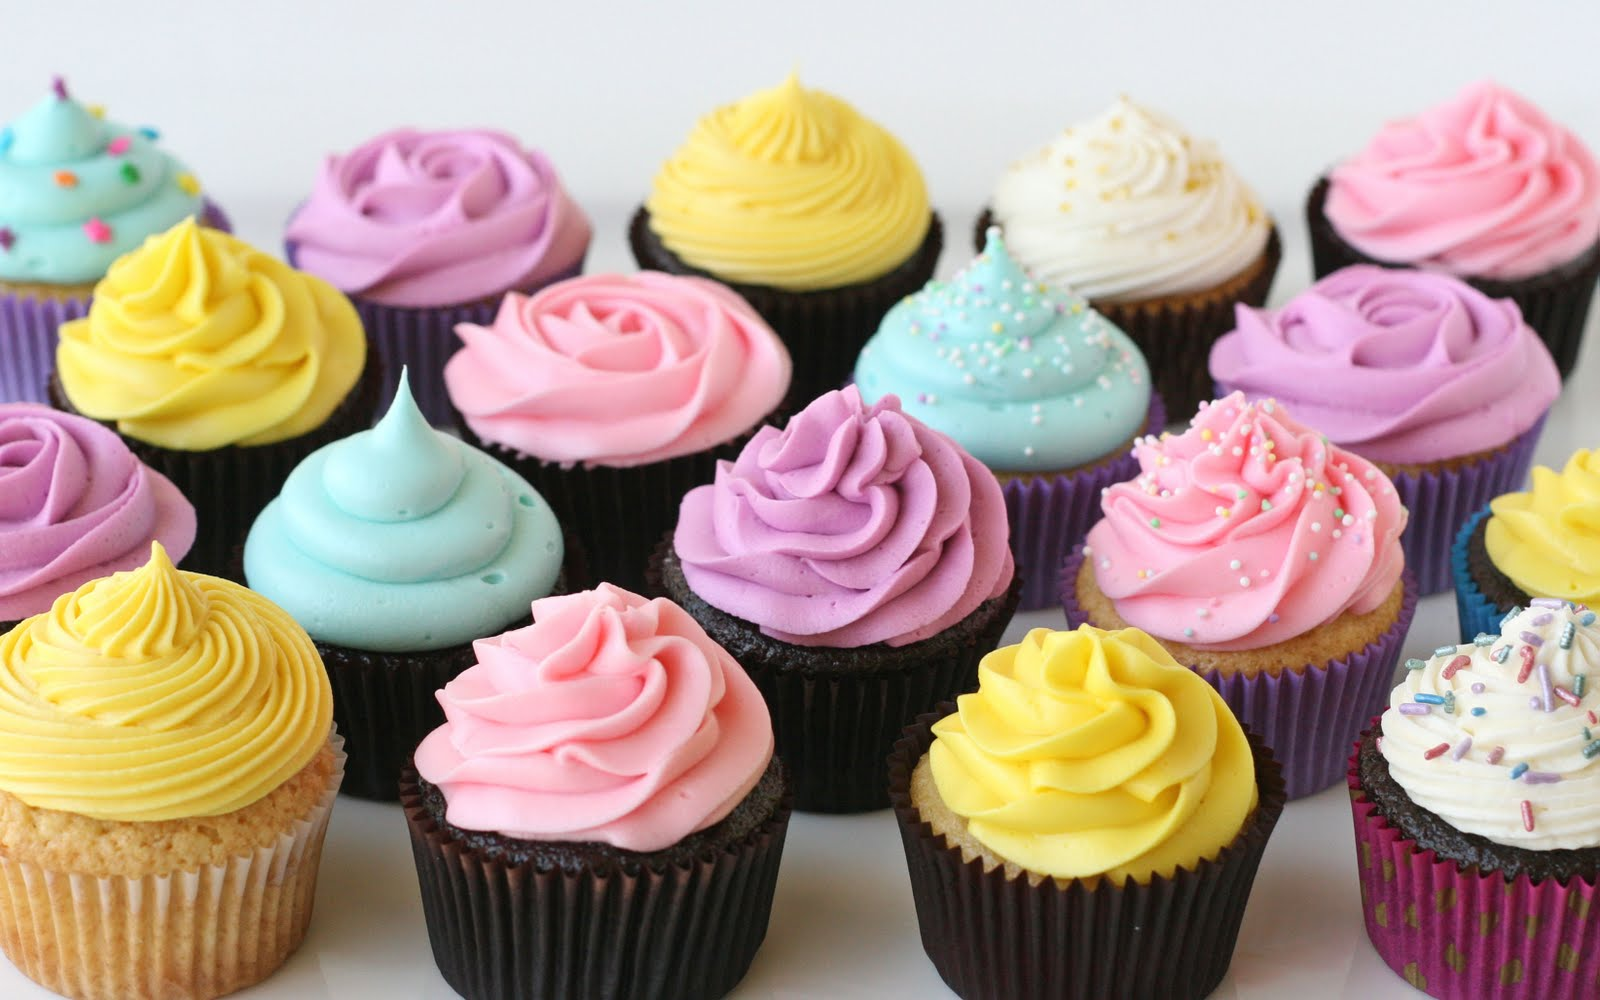 Is That Cupcake Really Harmless? Find Cupcake Nutrition